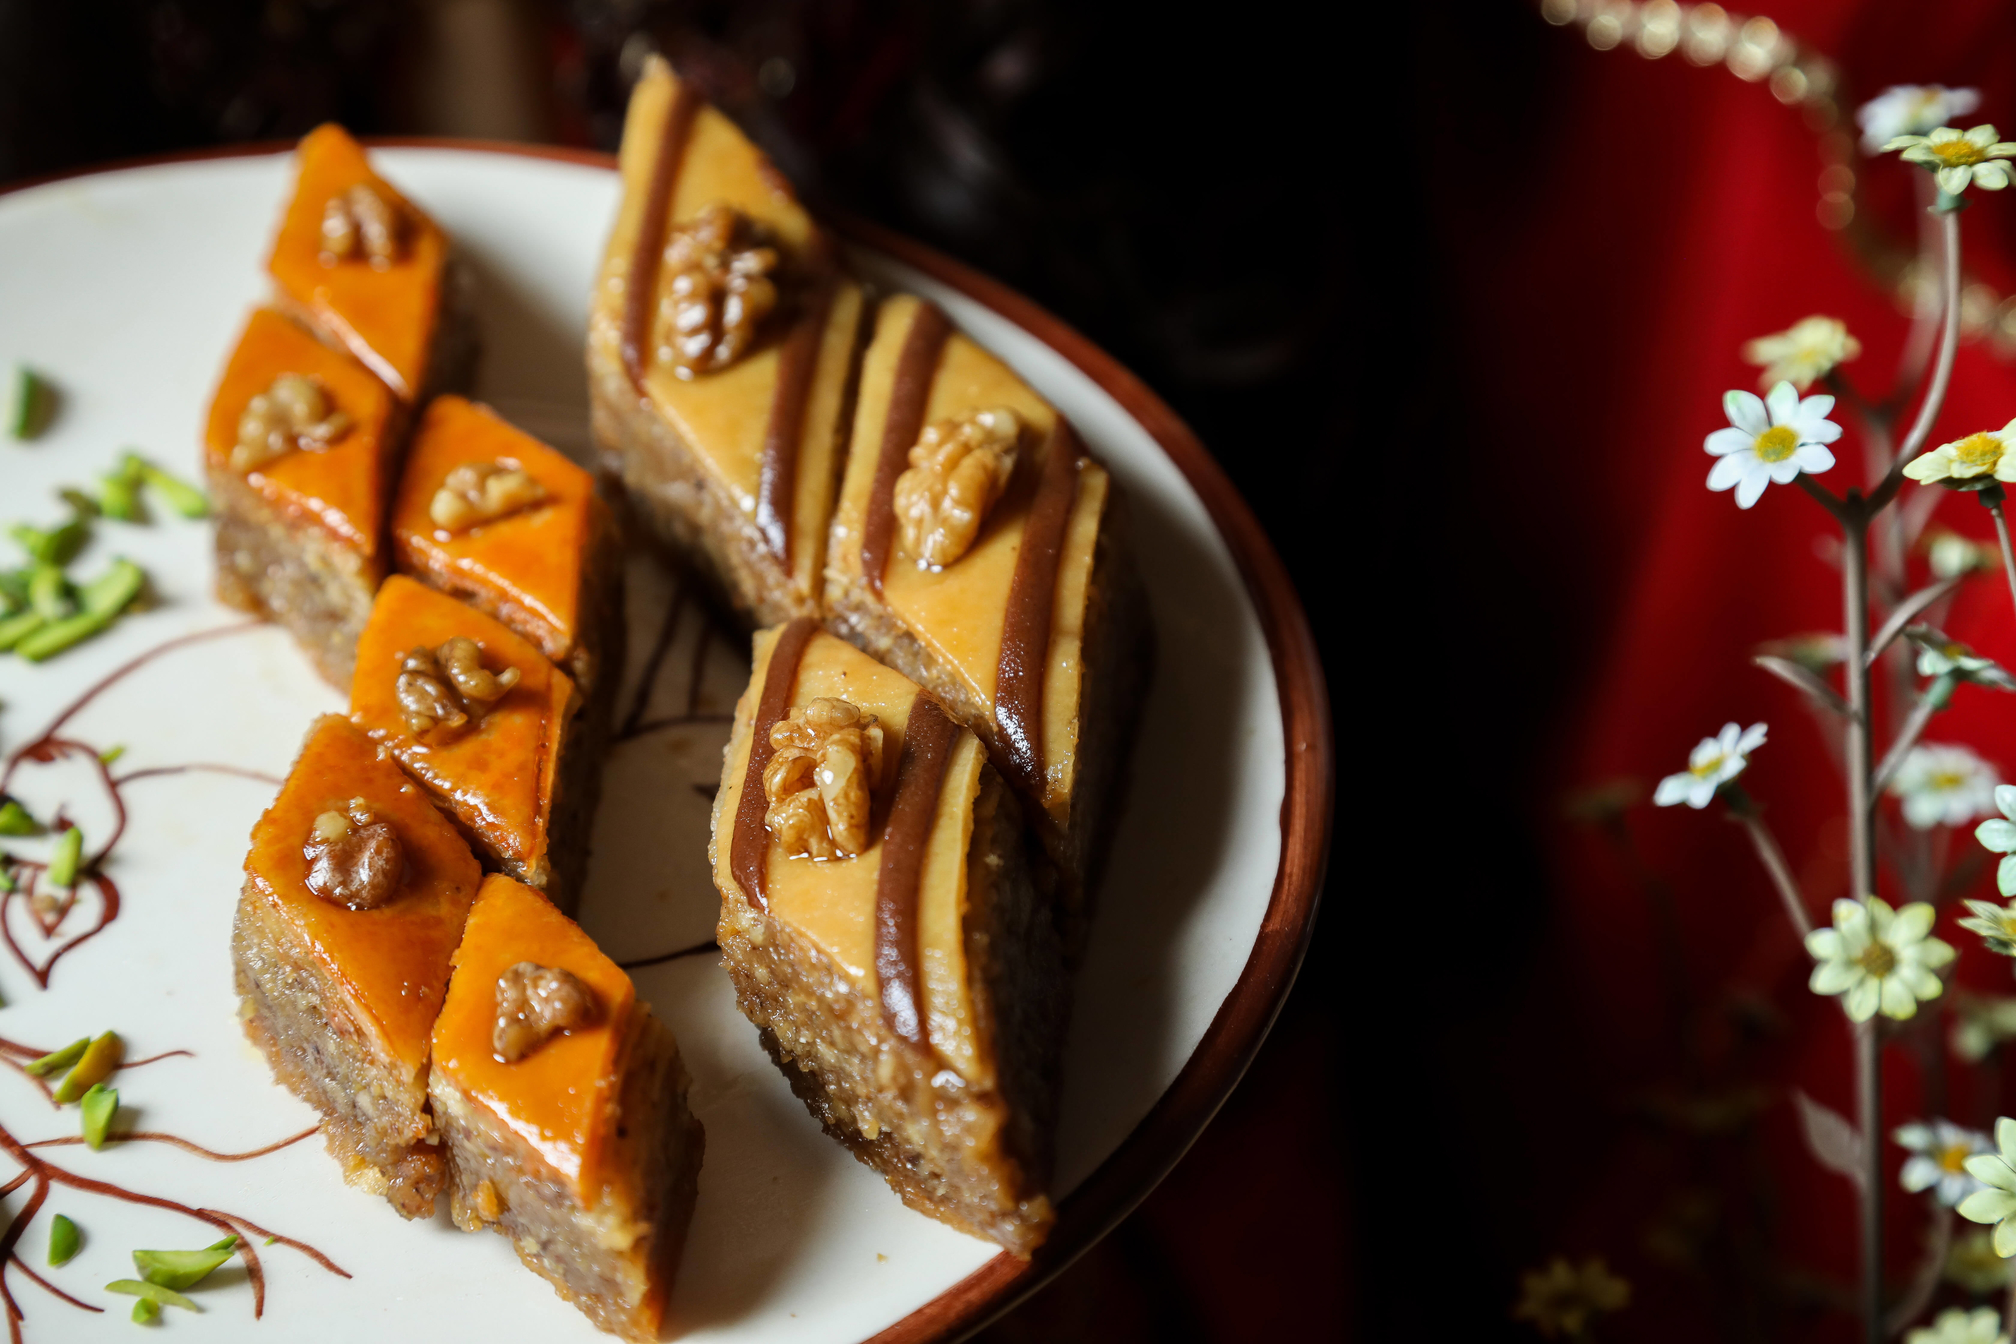 What Are The Best Desserts Ever: A Small Bite Of Desserts